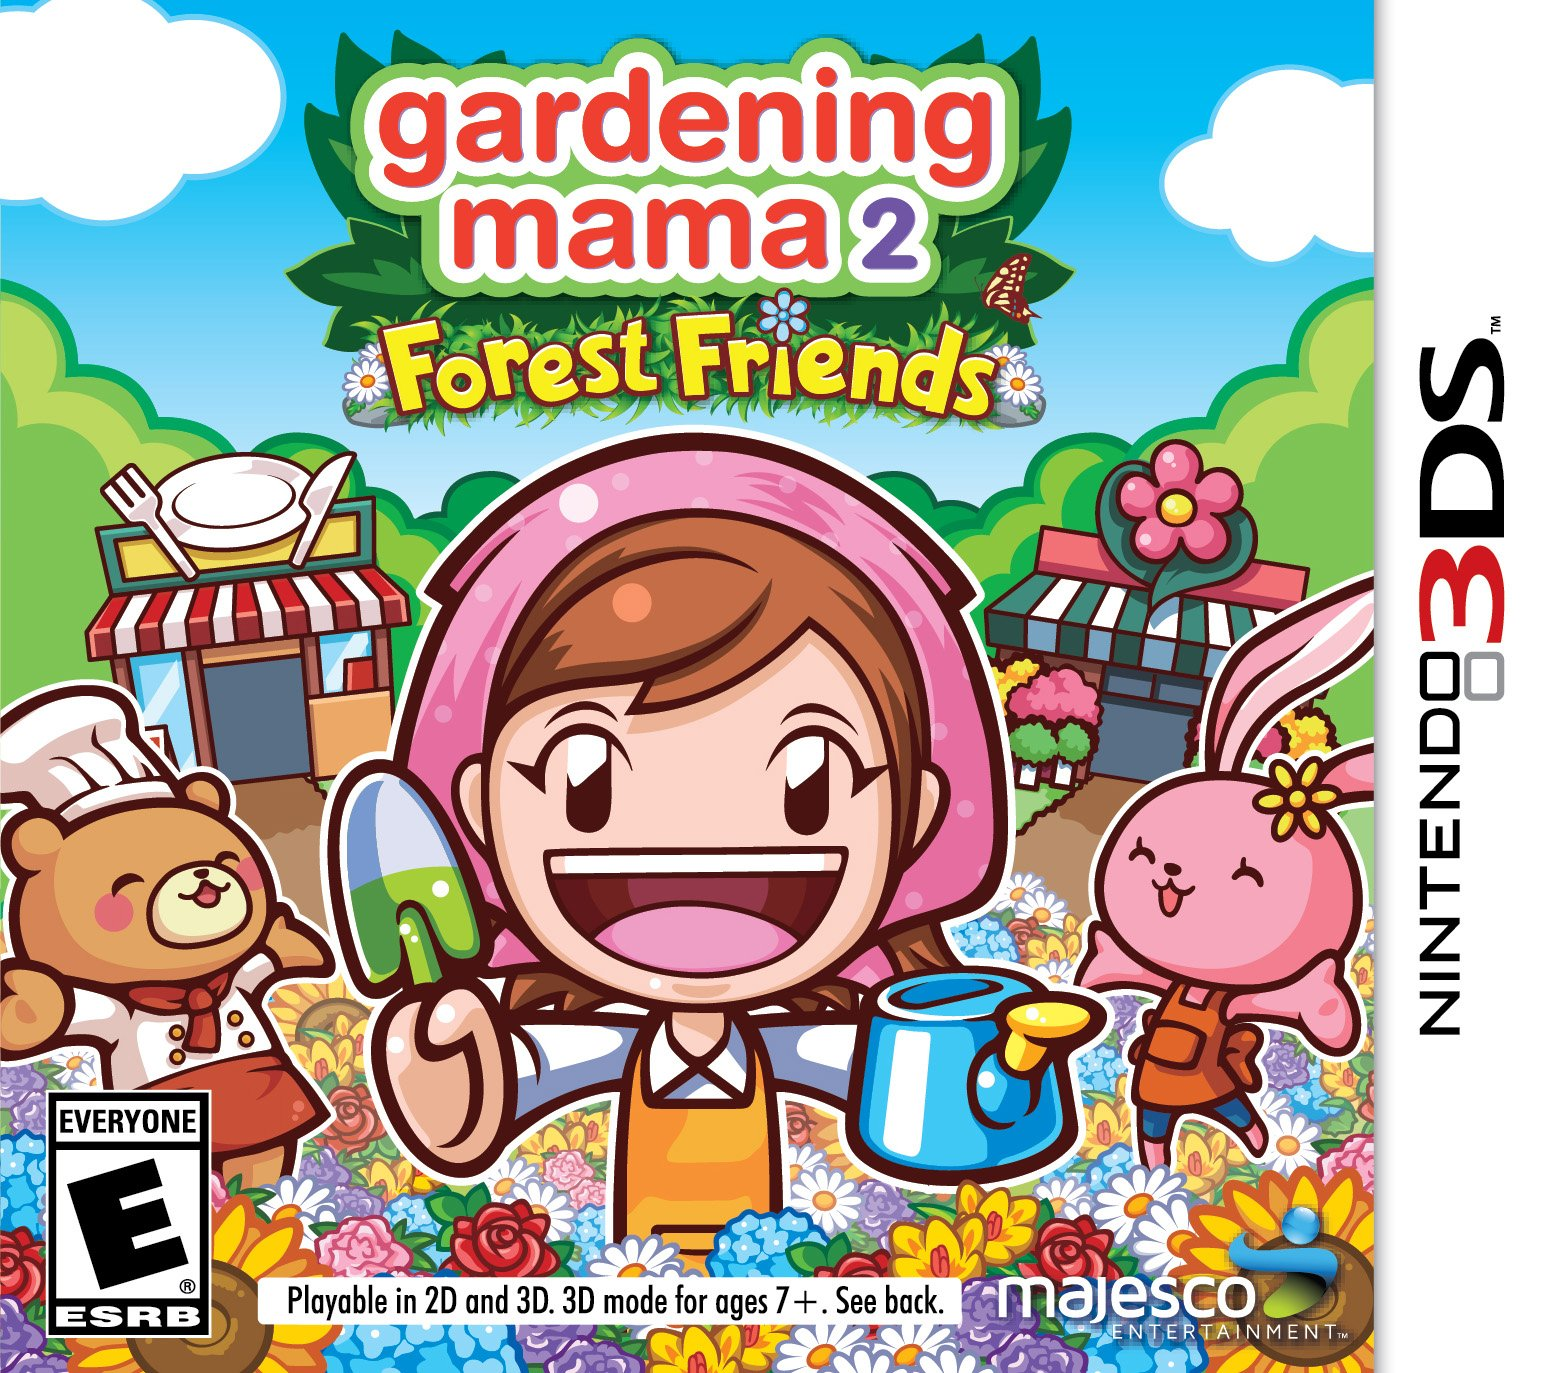 Gardening Mama 2: Forest Friends - Nintendo 3DS